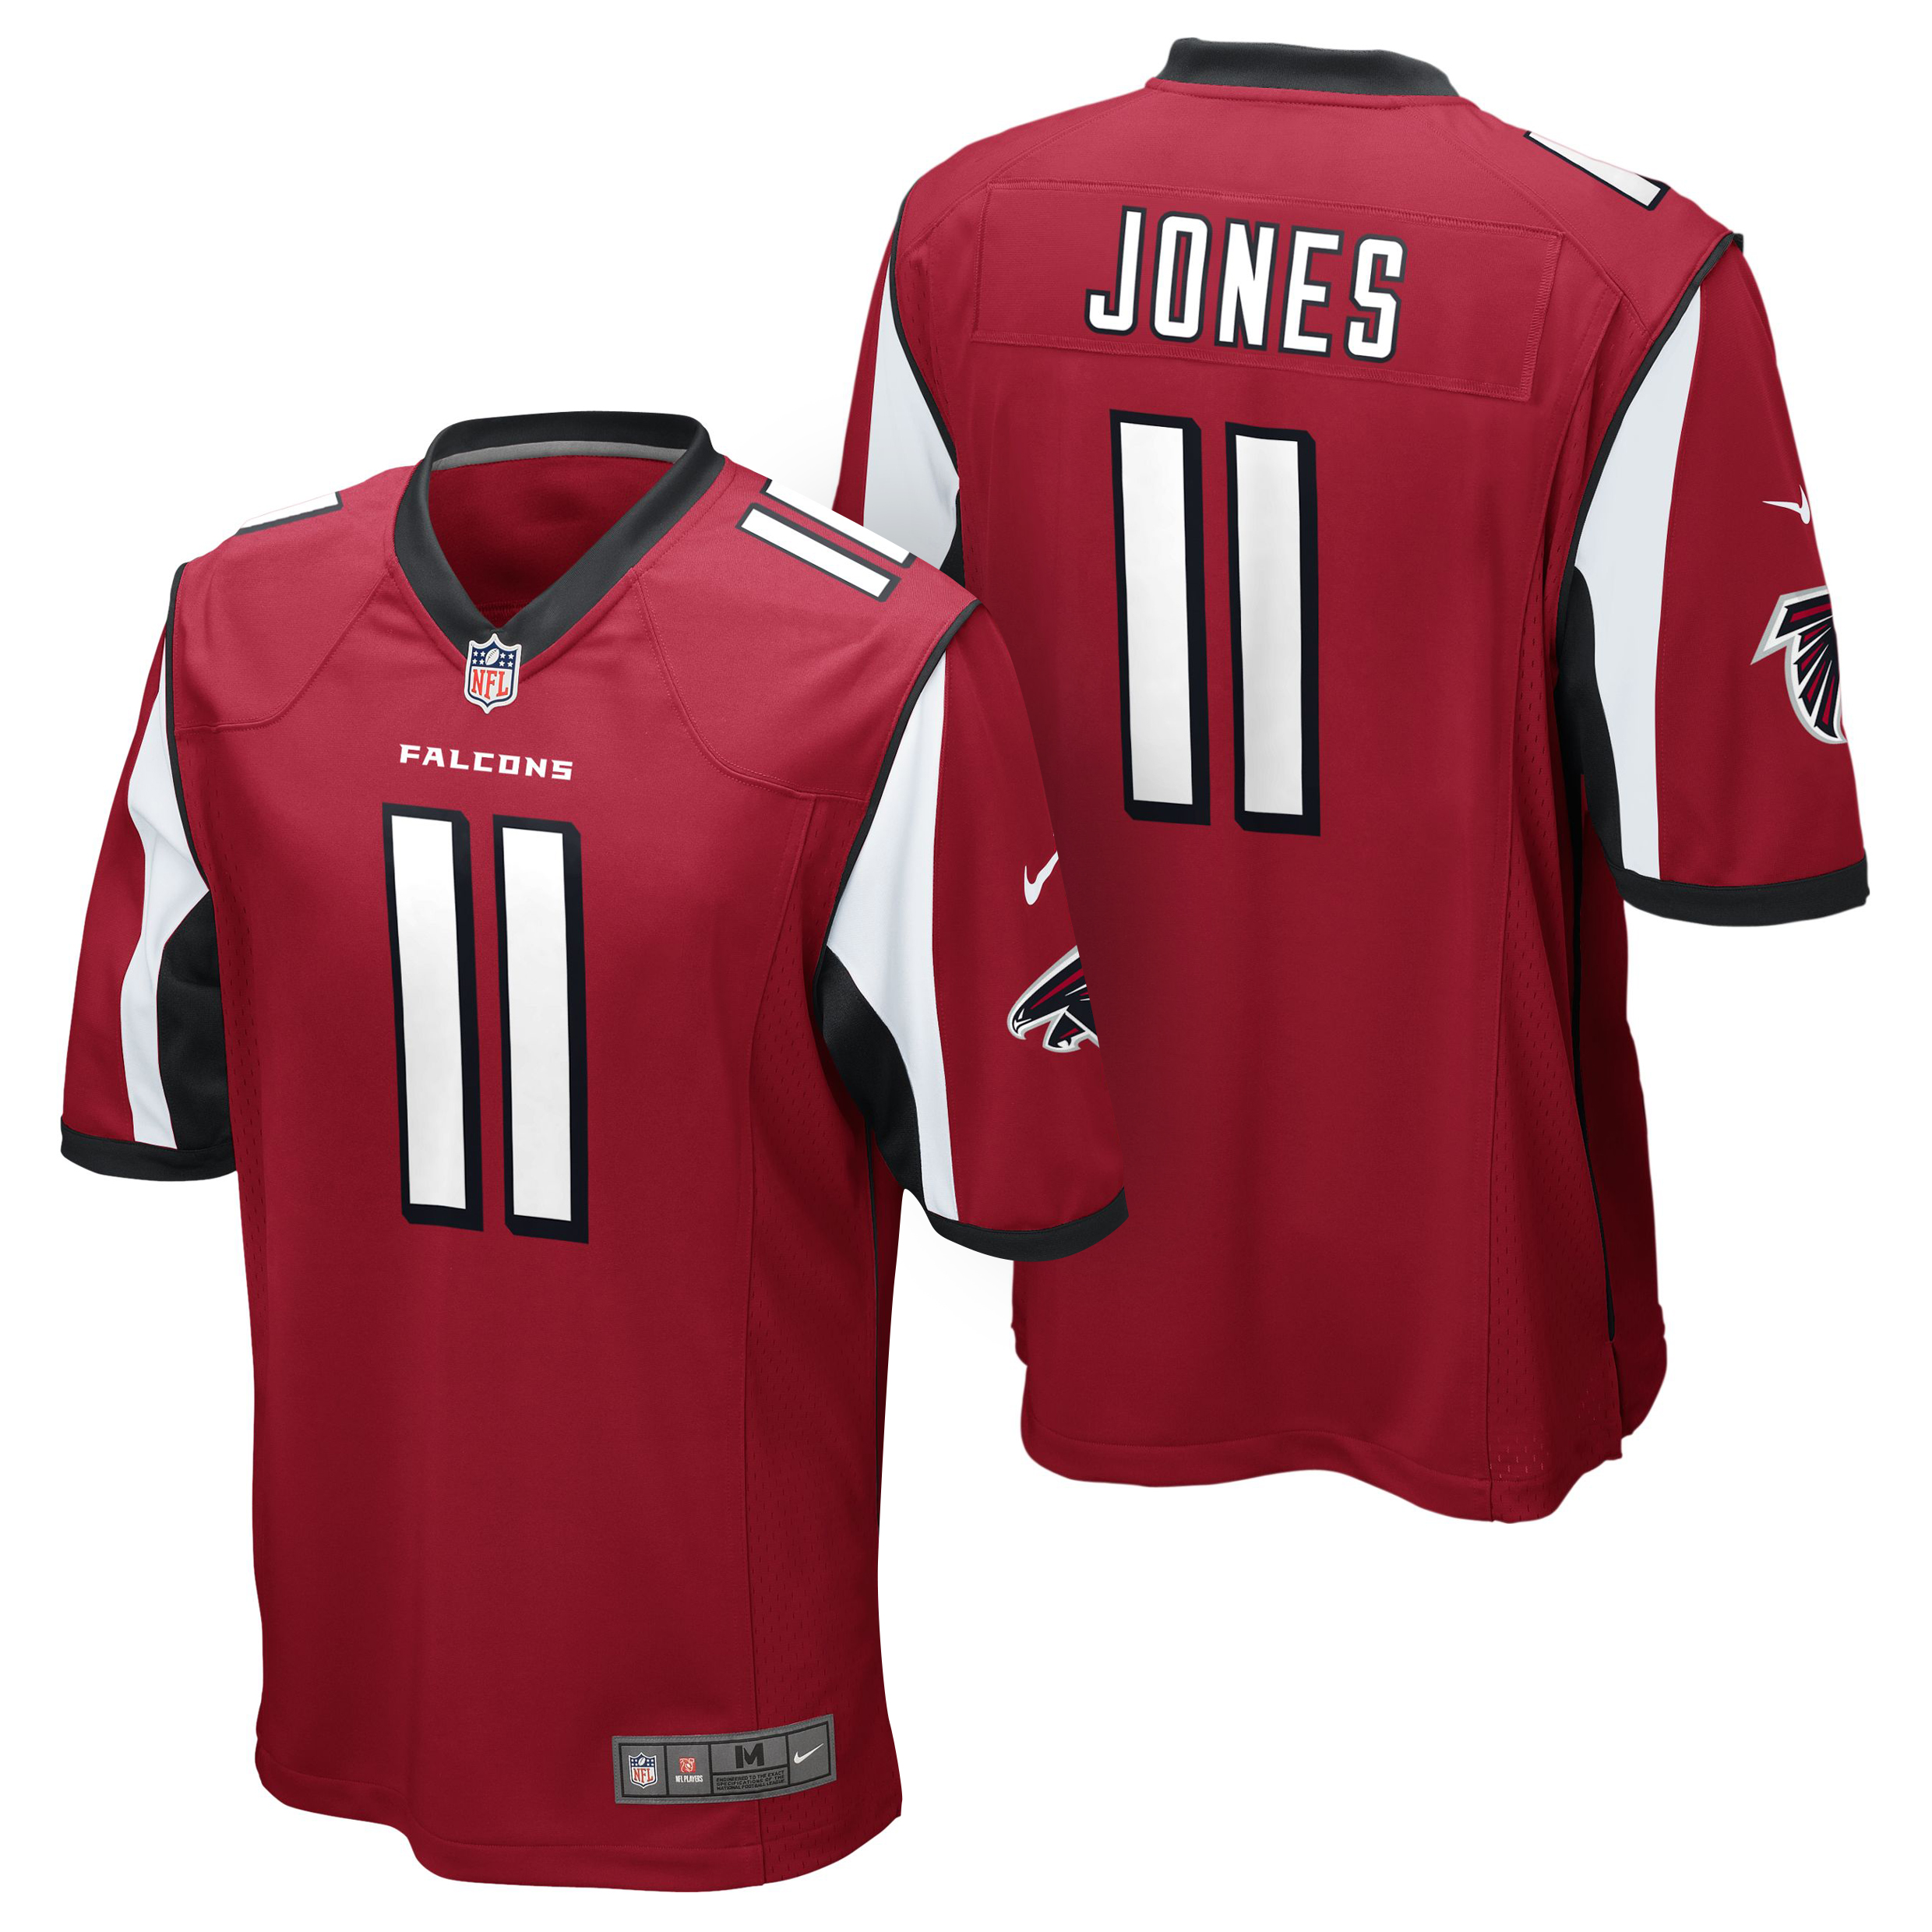 Atlanta Falcons Home Game Jersey - Julio Jones